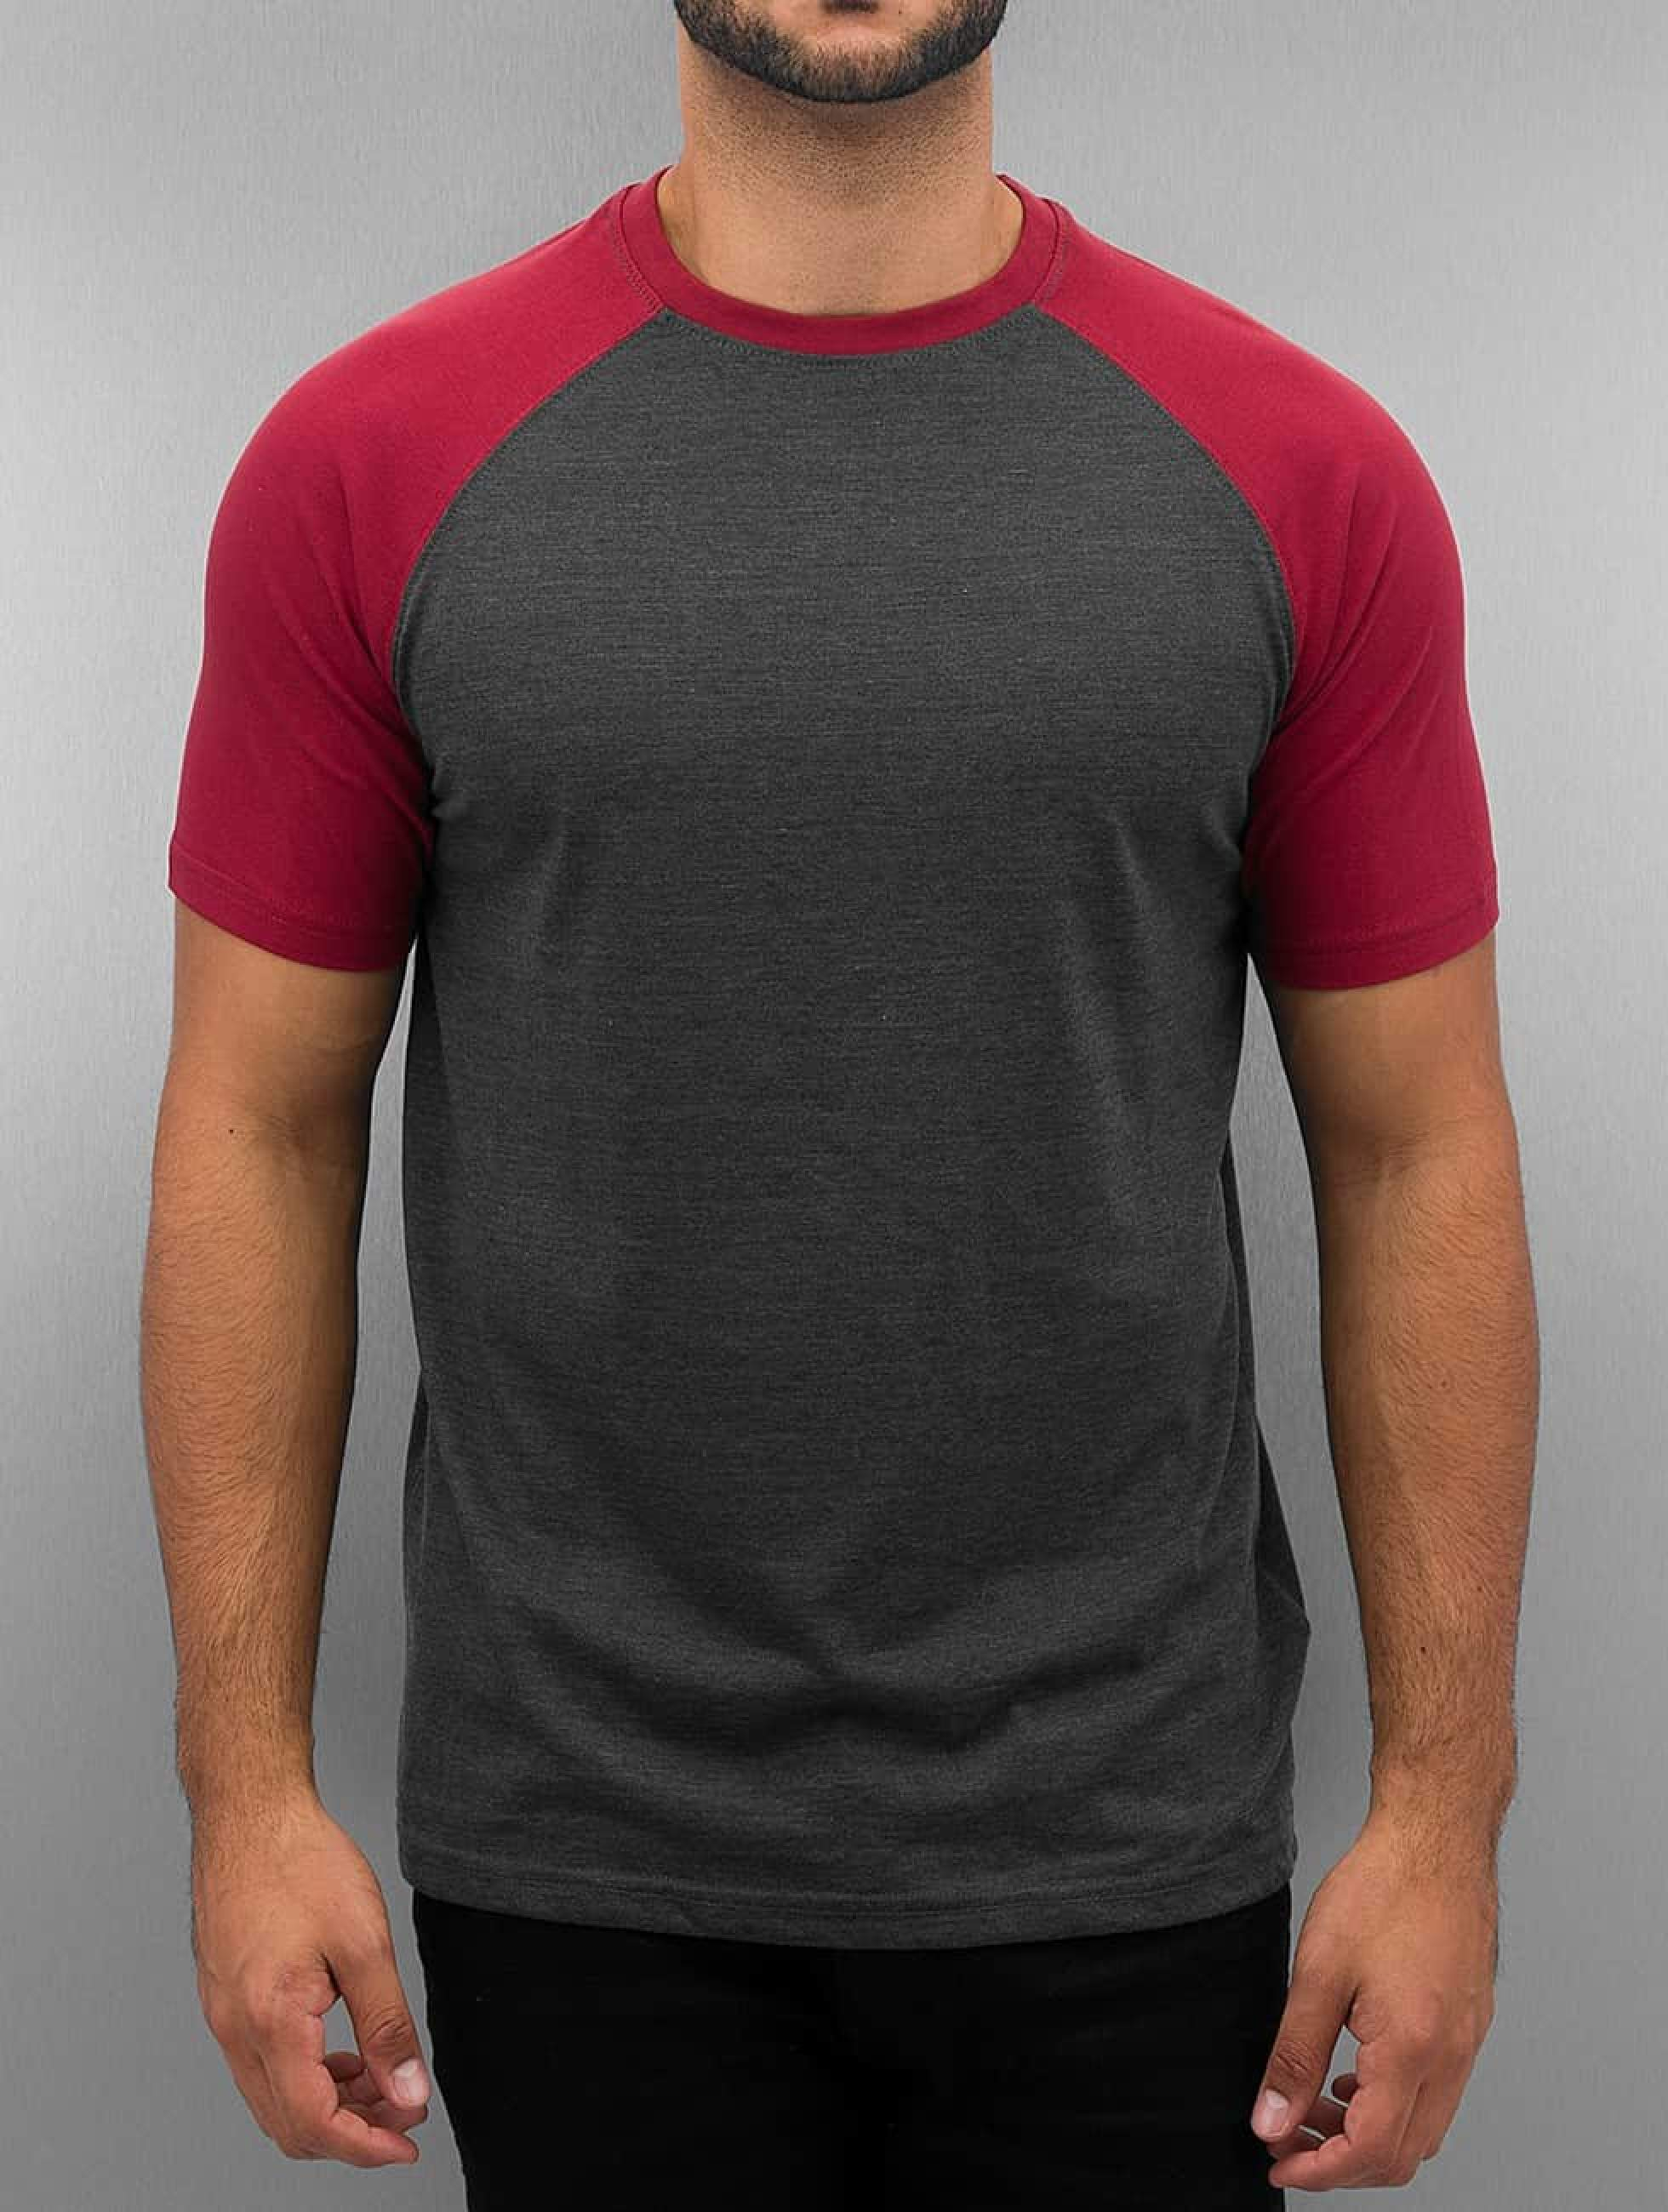 Cyprime / T-Shirt Raglan in red 2XL